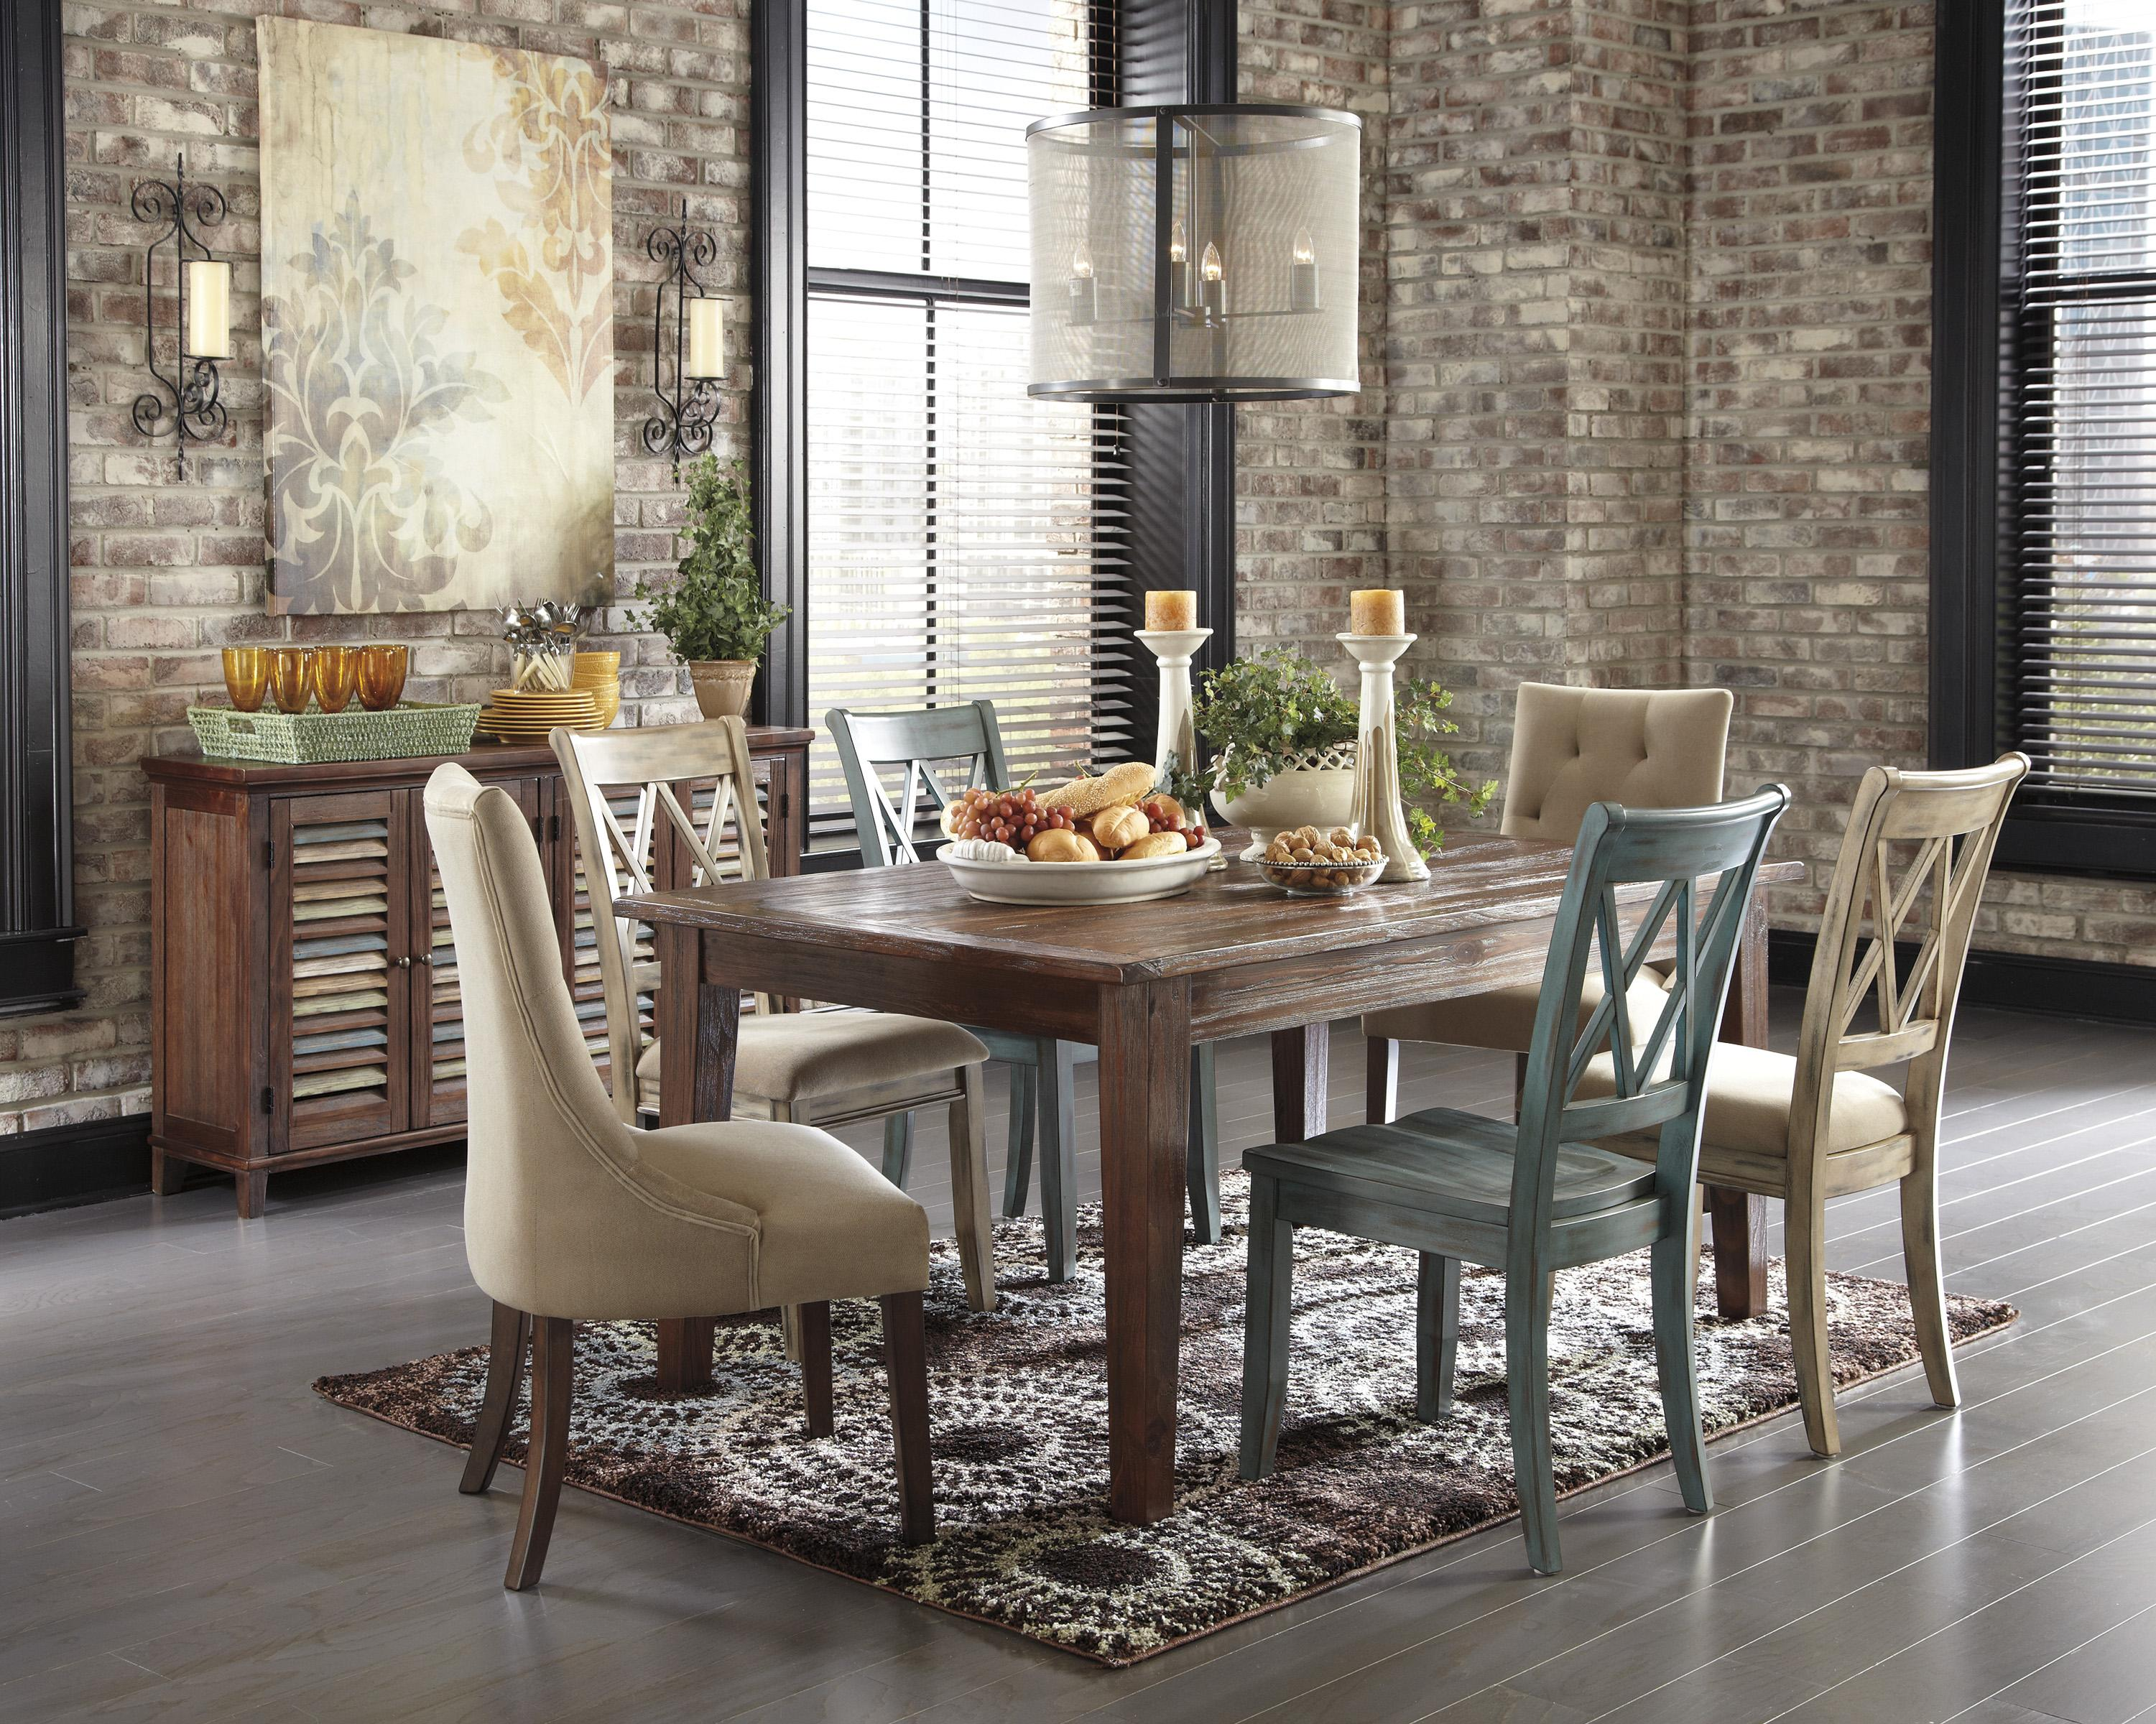 Signature Design by Ashley Mestler Casual Dining Room Group - Item Number: D540 Dining Room Group 2